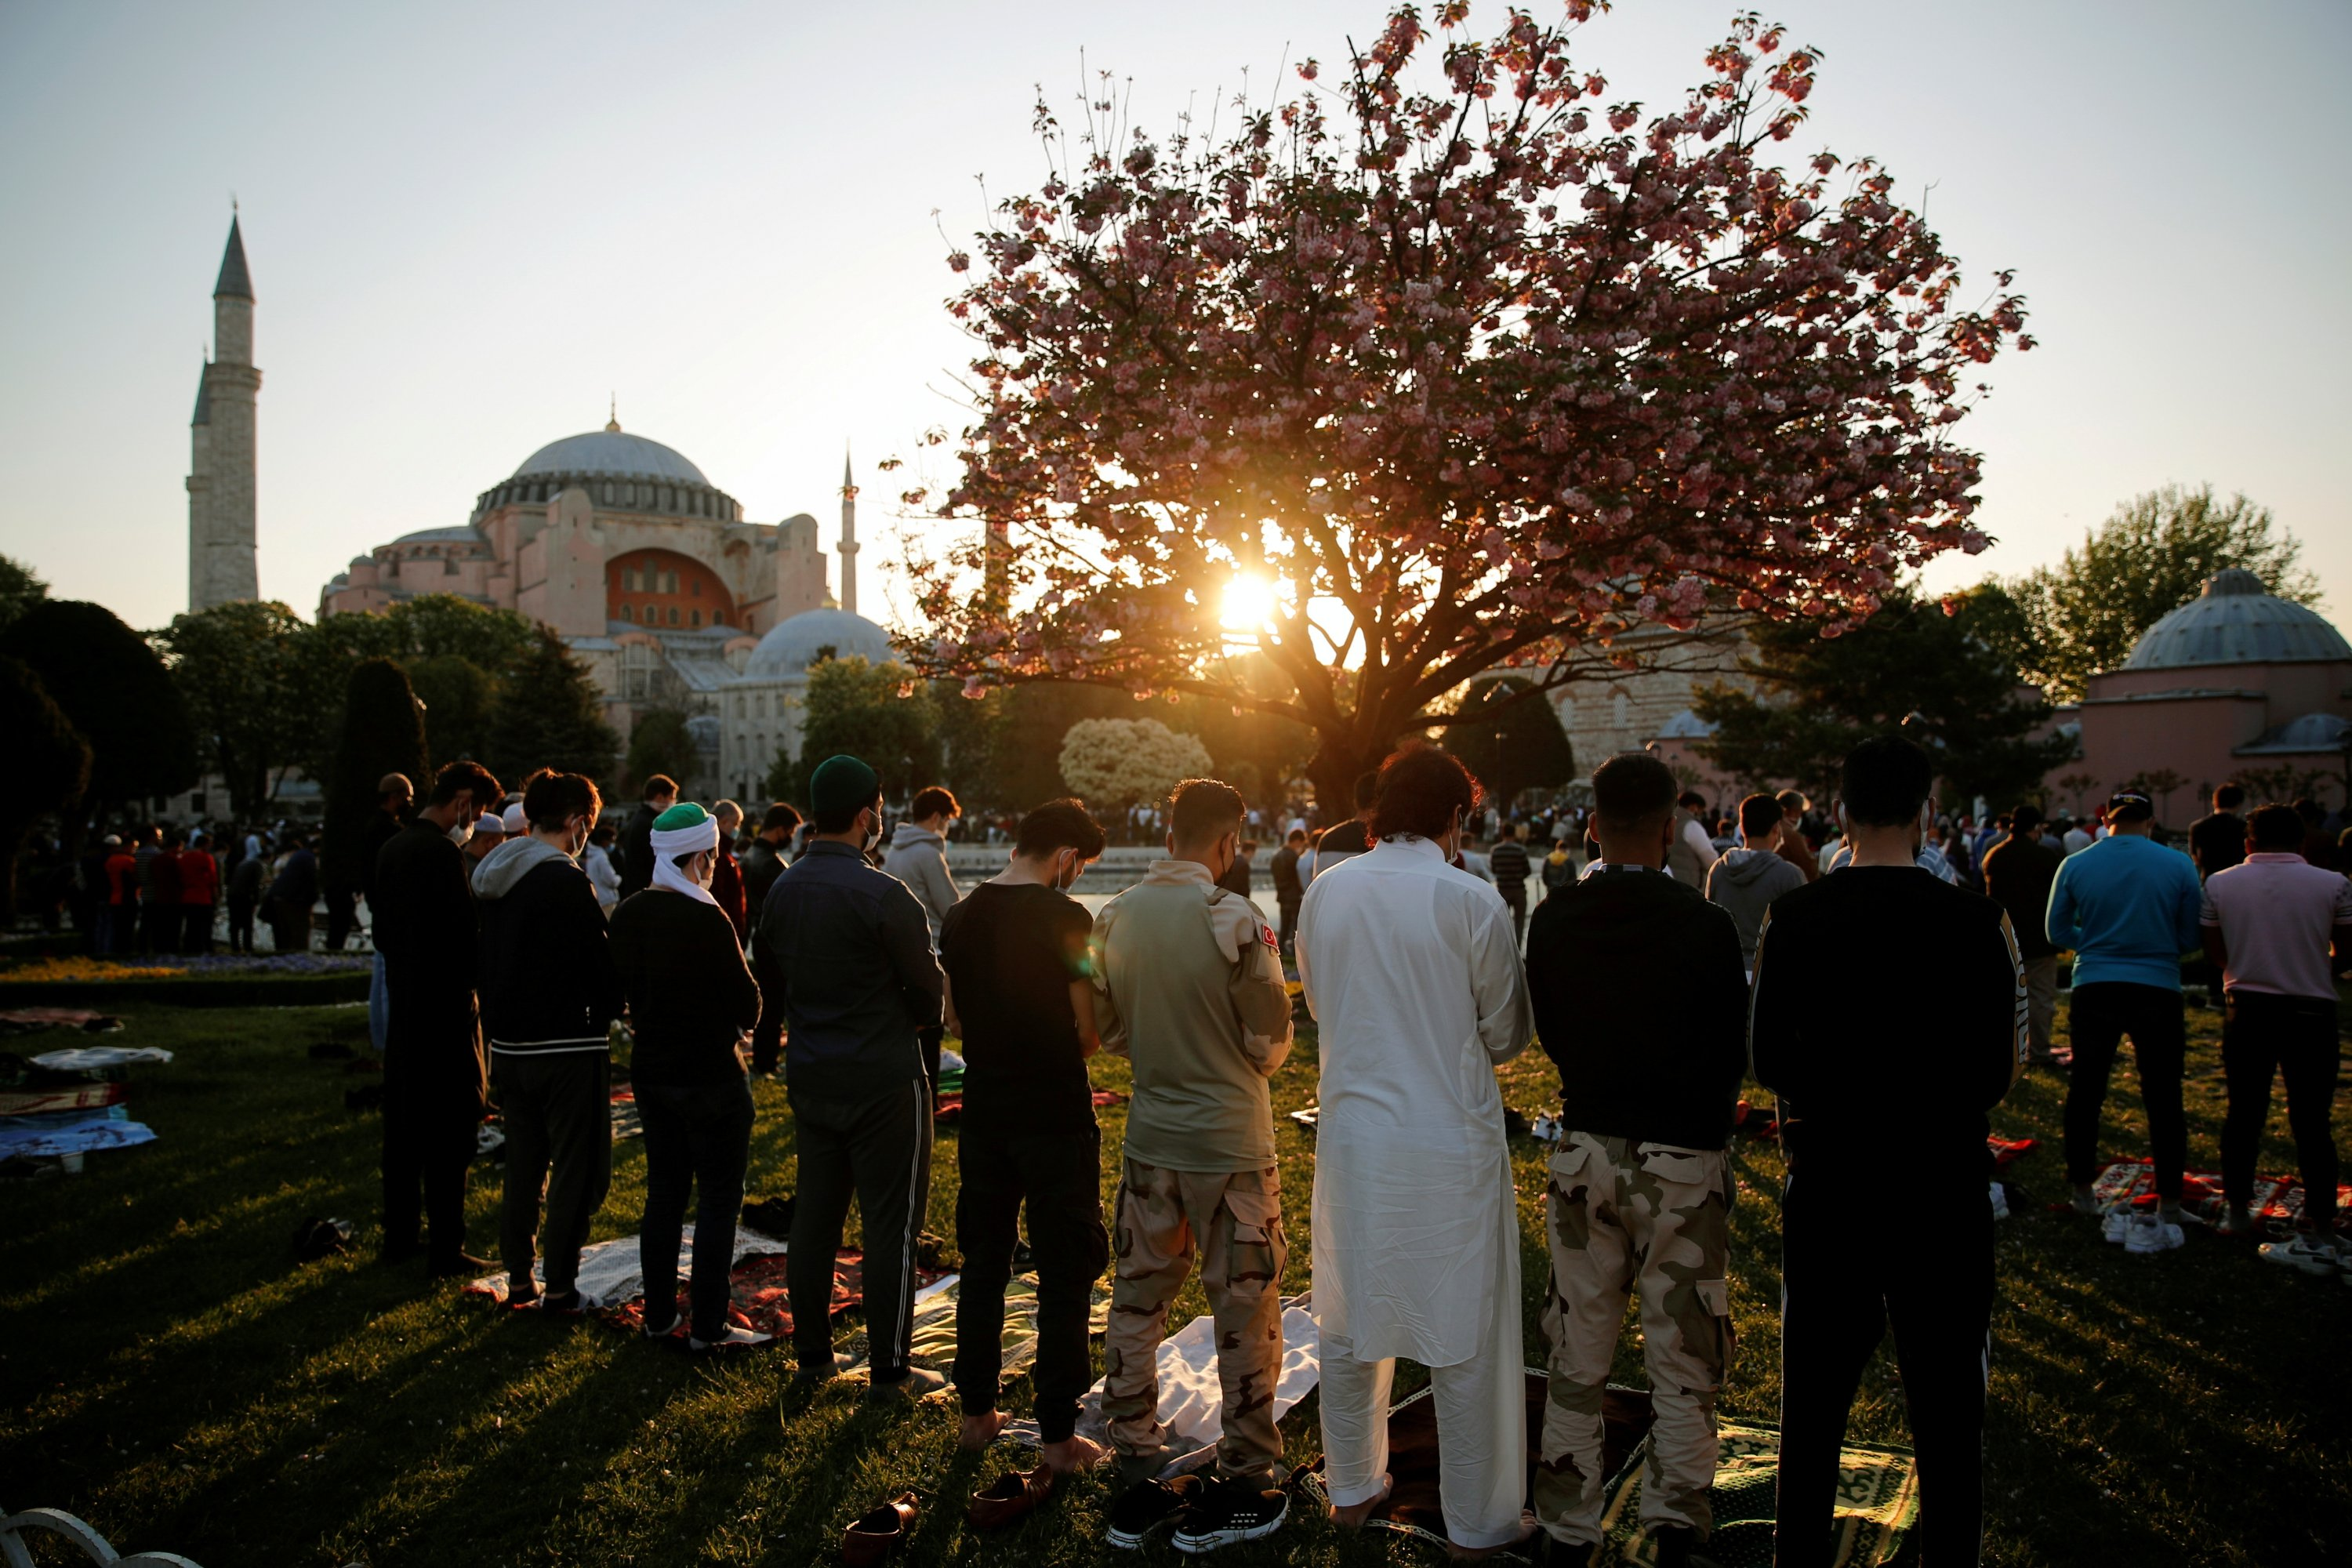 People attend Eid al-Fitr prayers marking the end of the fasting month of Ramadan, outside the Hagia Sophia Grand Mosque in Istanbul, Turkey May 13, 2021. (Reuters Photo)